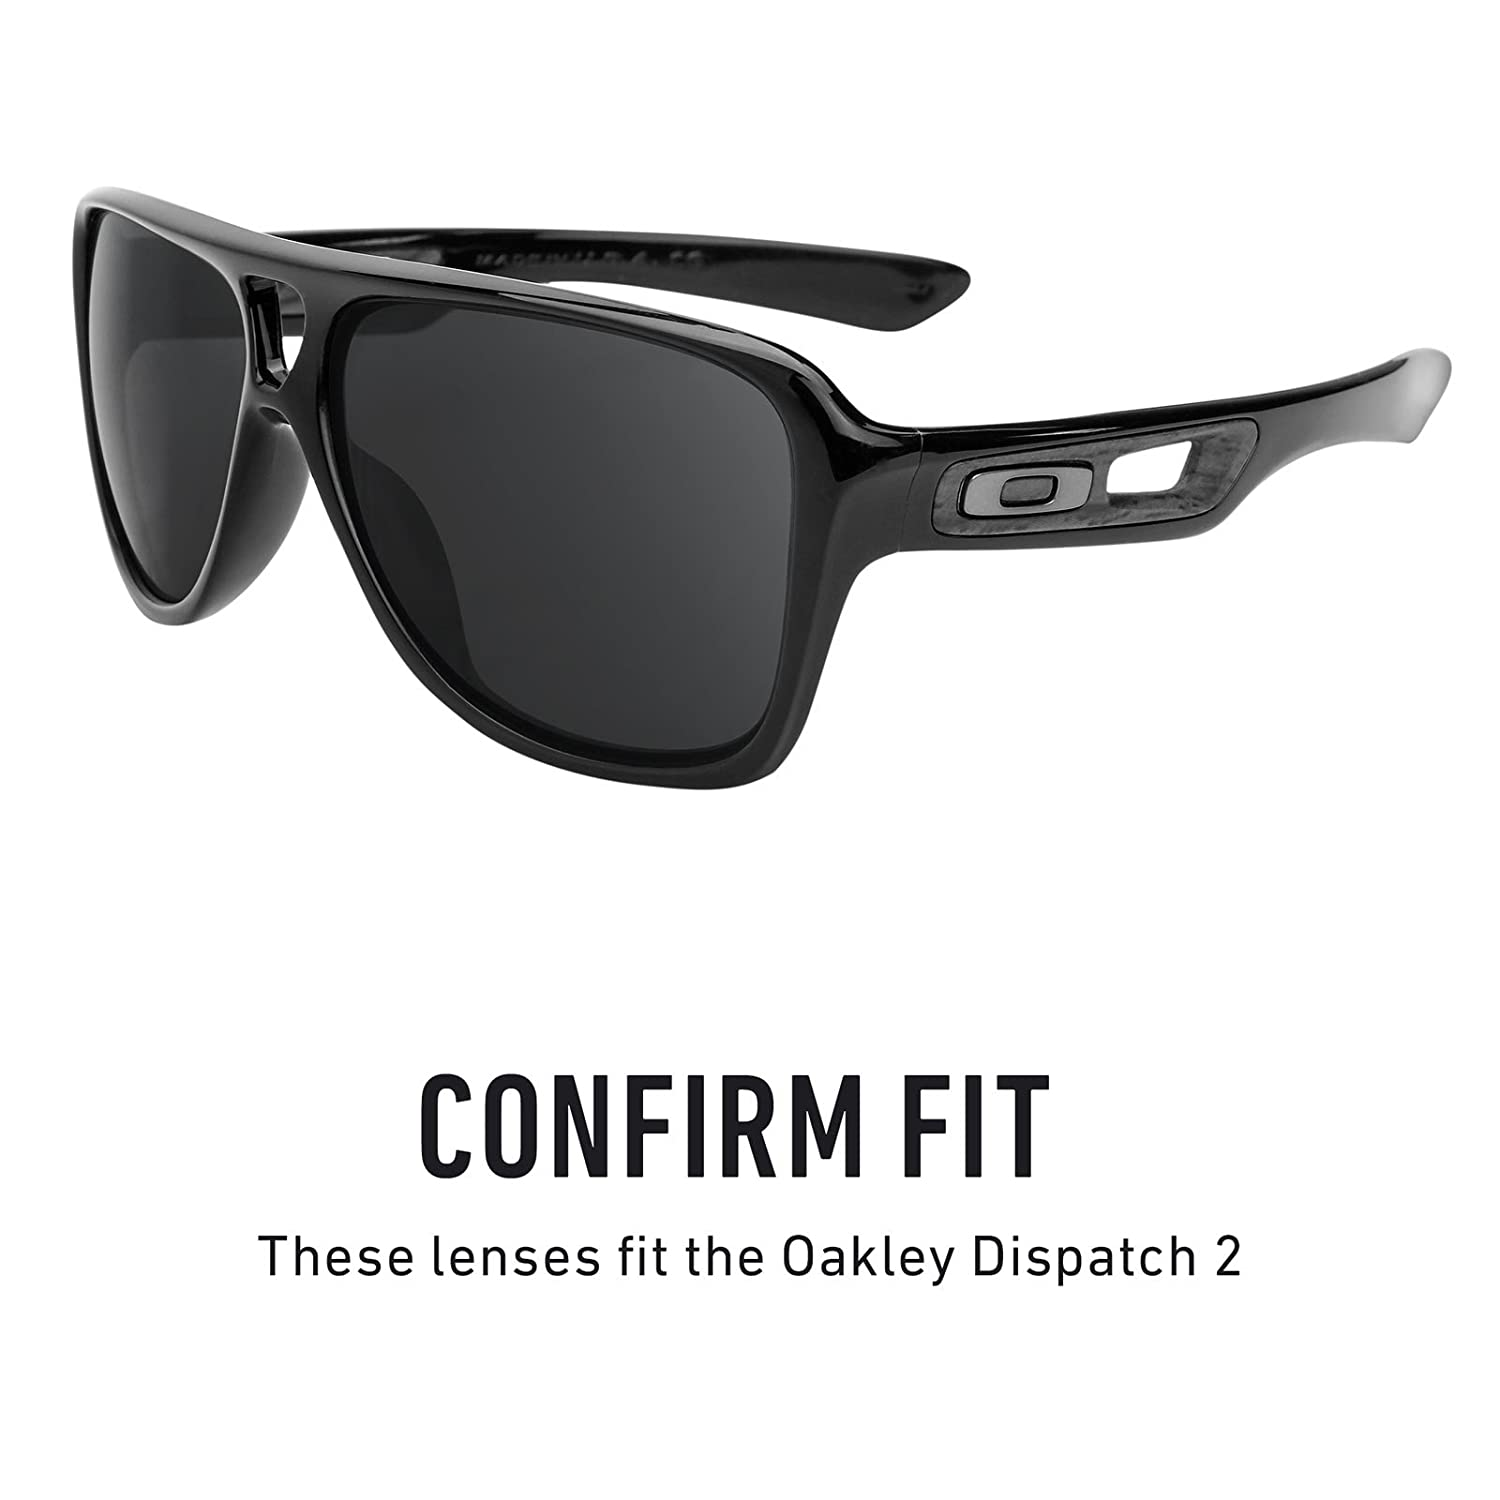 0c3b0bf8fa Amazon.com  Revant Polarized Replacement Lenses for Oakley Dispatch 2 Elite  Black Chrome MirrorShield  Sports   Outdoors